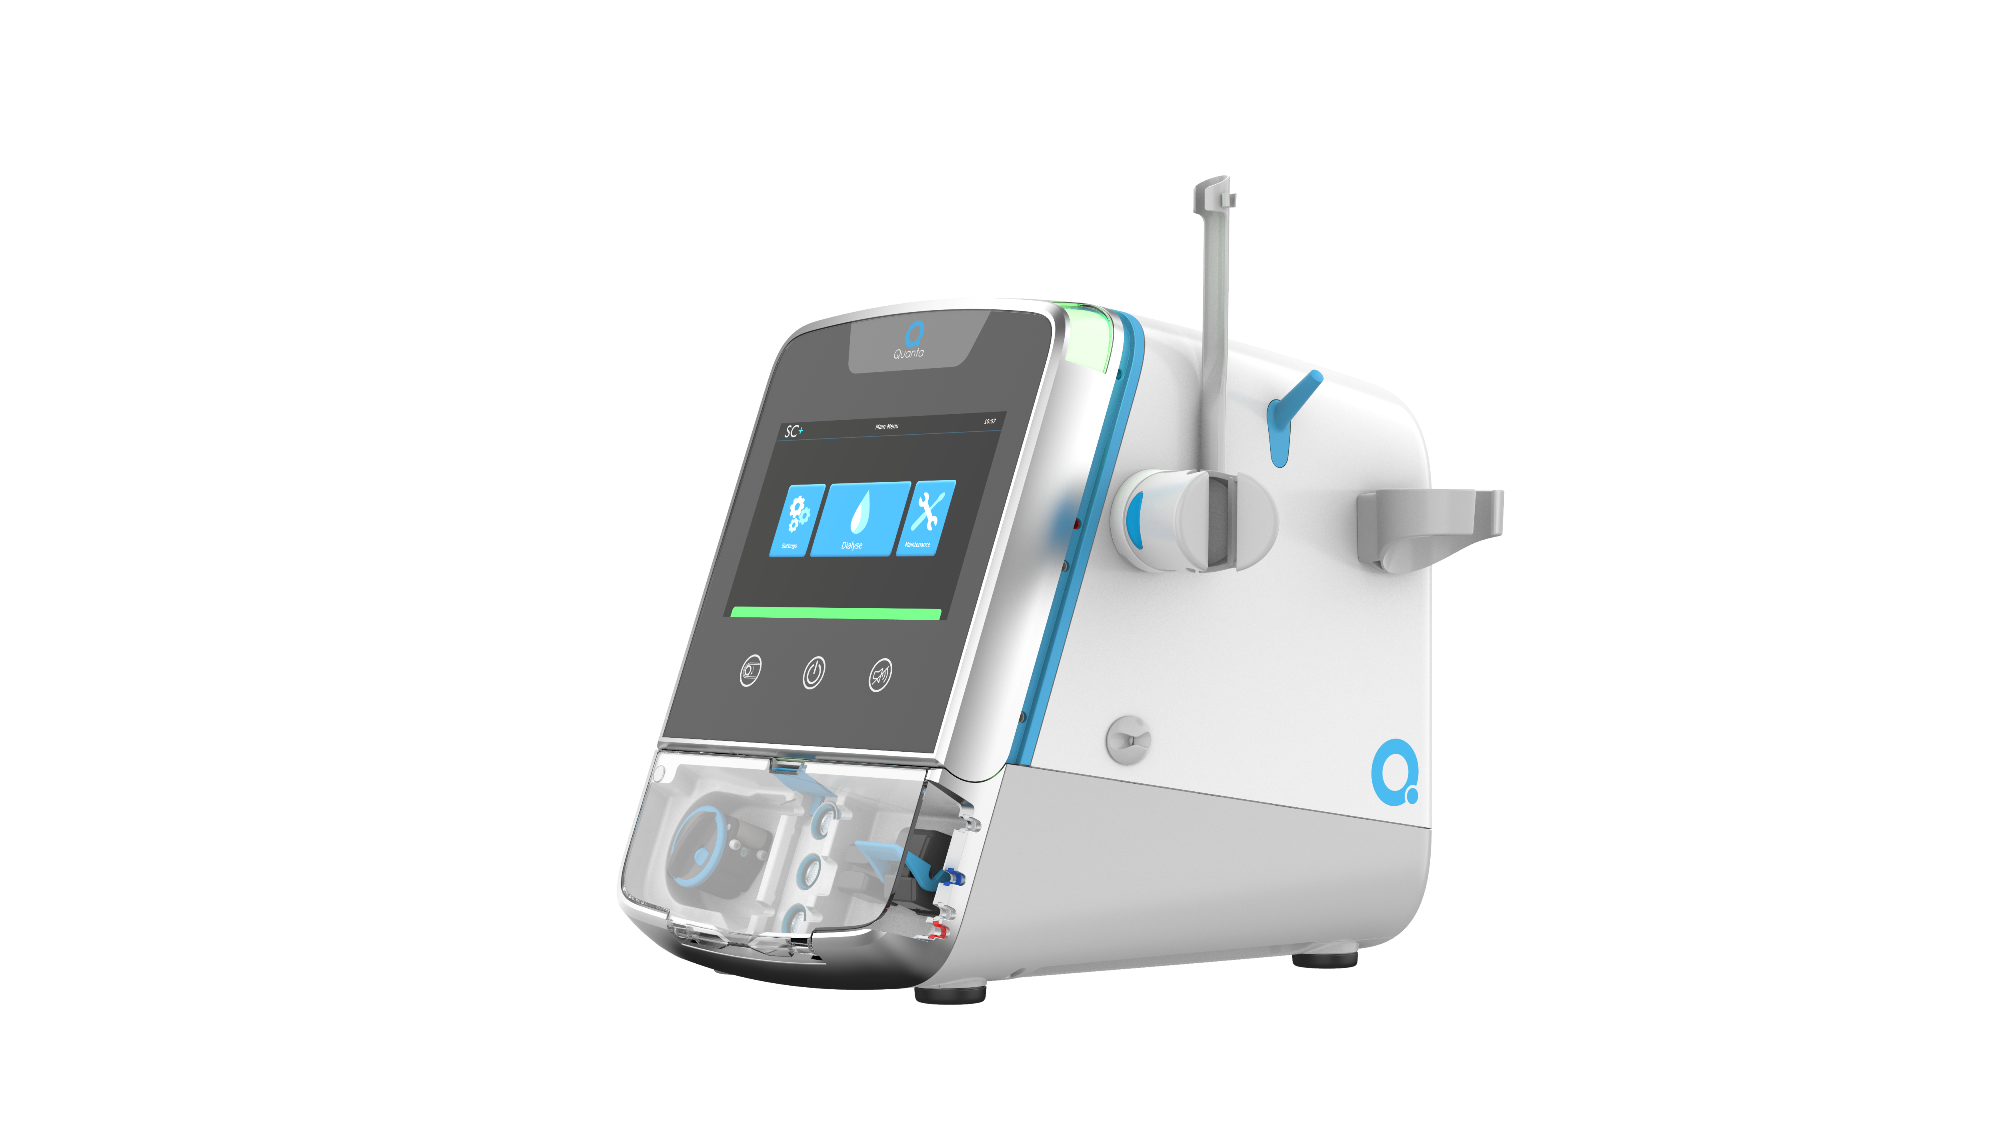 Quanta portable dialysis unit